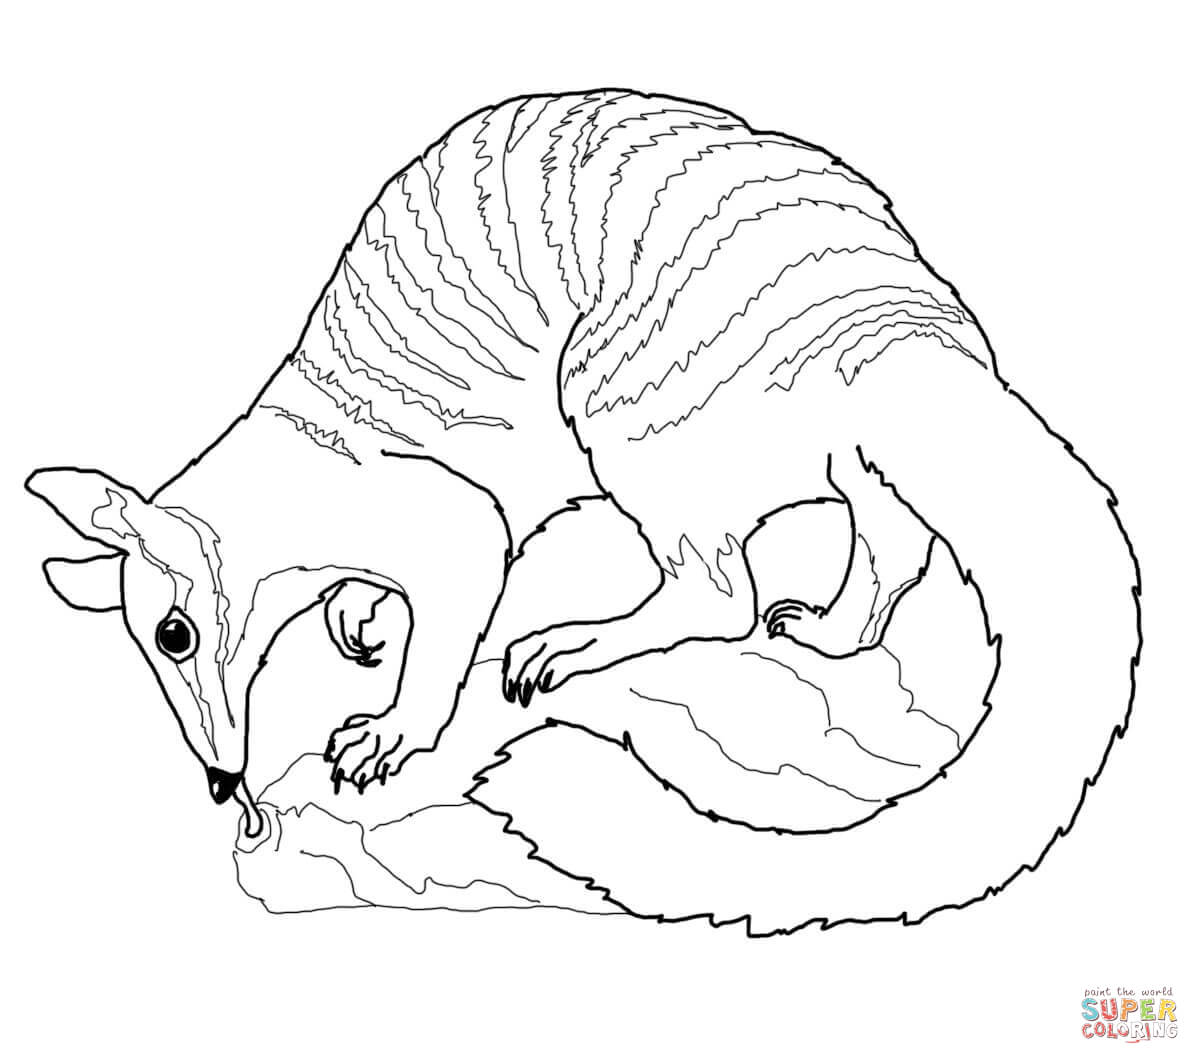 Wombat Drawing At Getdrawings Com Free For Personal Use Wombat